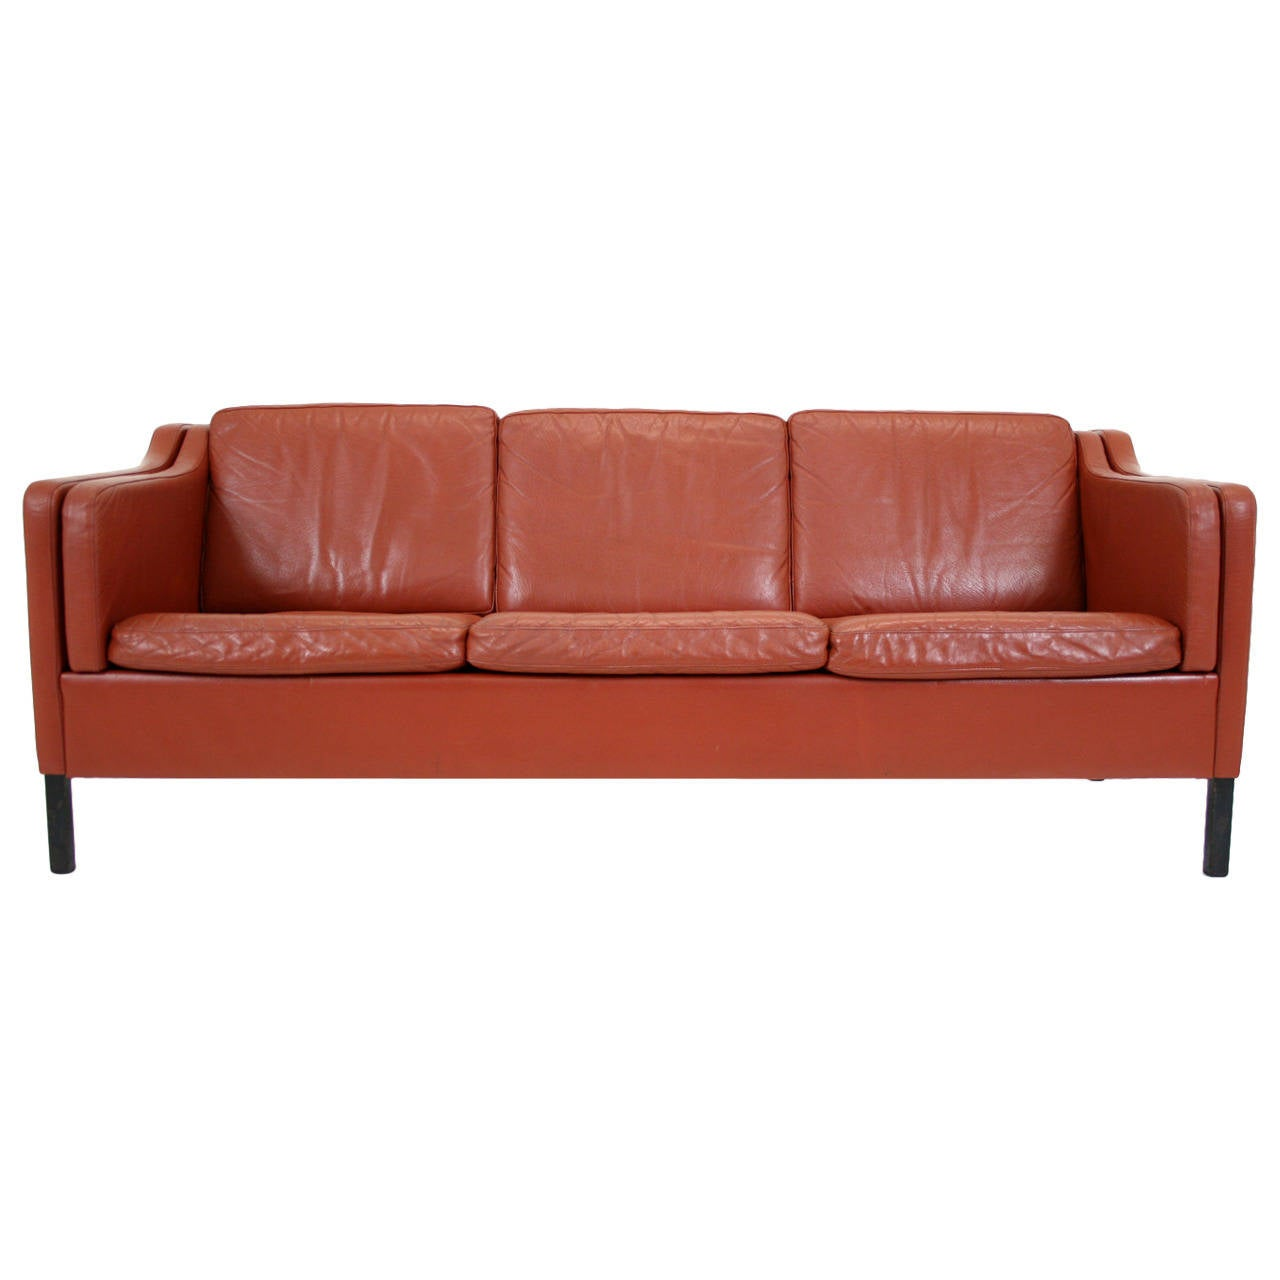 danish mid century modern leather three seat sofa or loveseat at